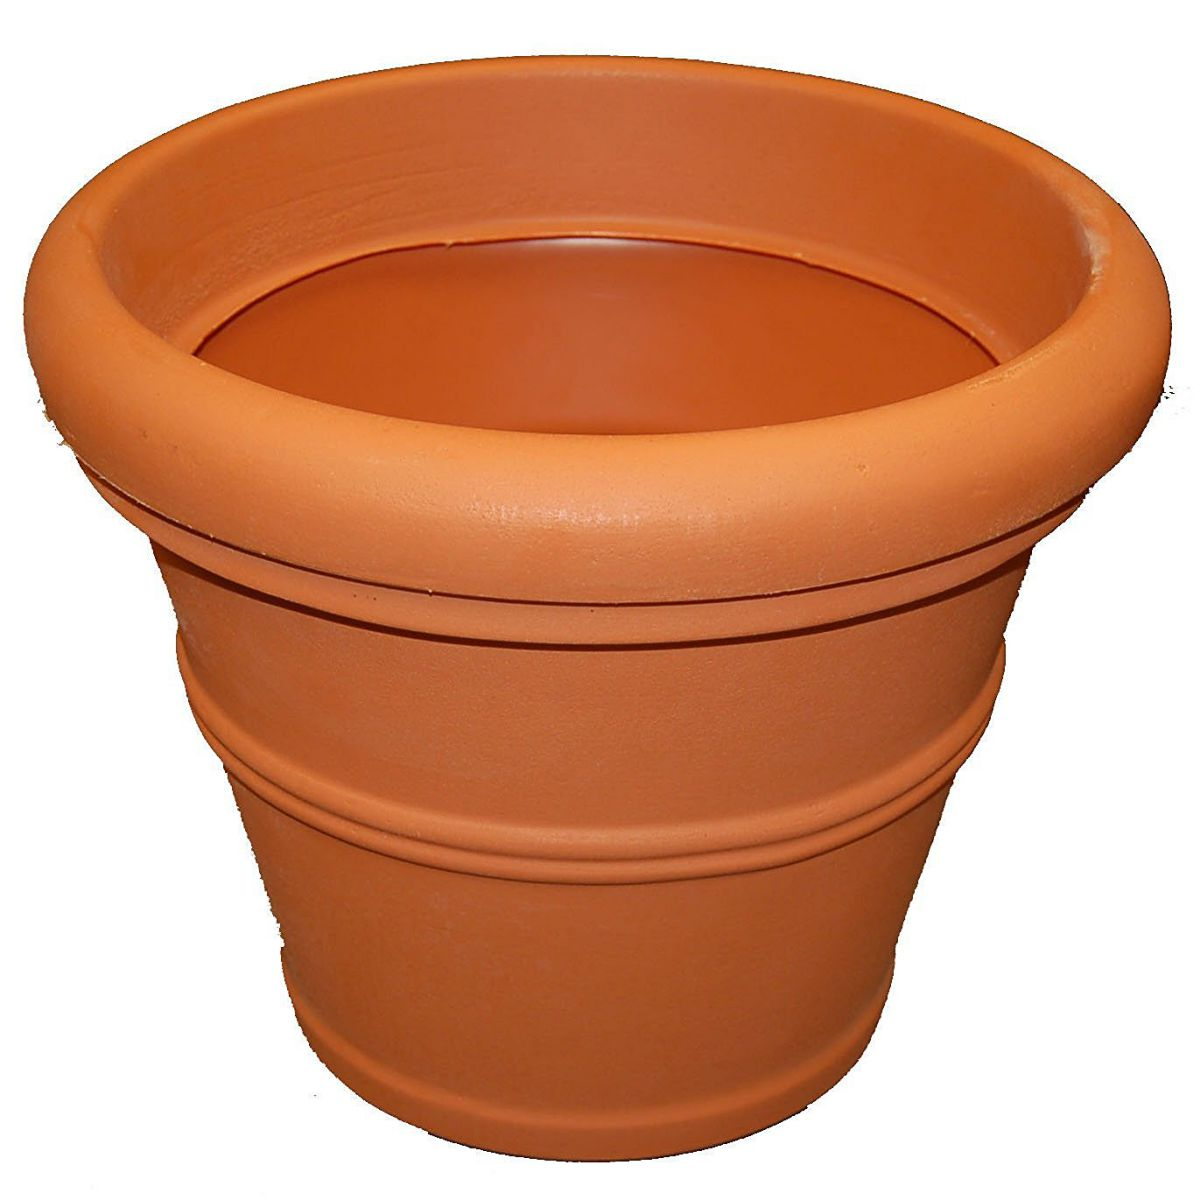 Tusco Products T20 Rolled Rim Pot, Round, Terra Cotta, 20-Inch, Large Size